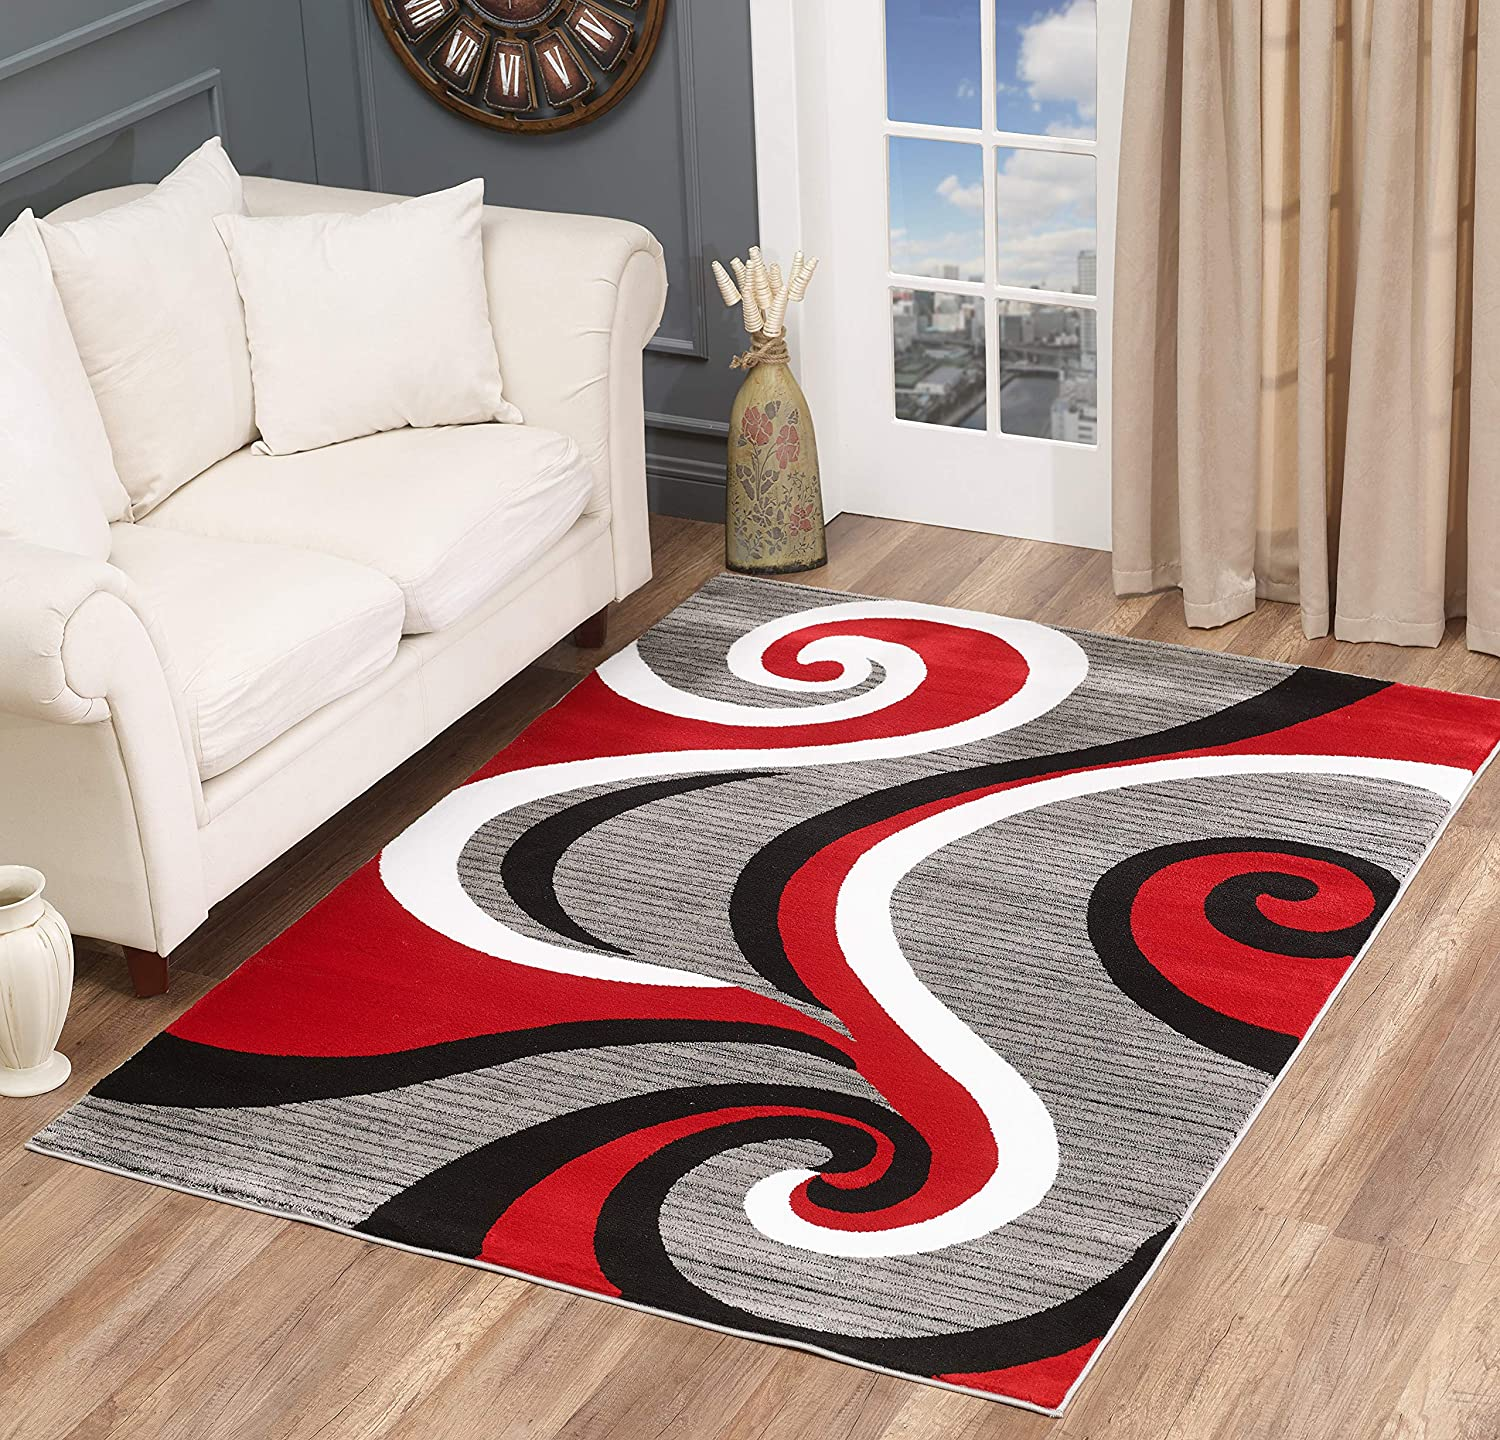 Golden Rugs Modern Area Rug Swirls Carpet Bedroom Living Room Contemporary Dining Accent Sevilla Collection 4817 (8x10, Red)